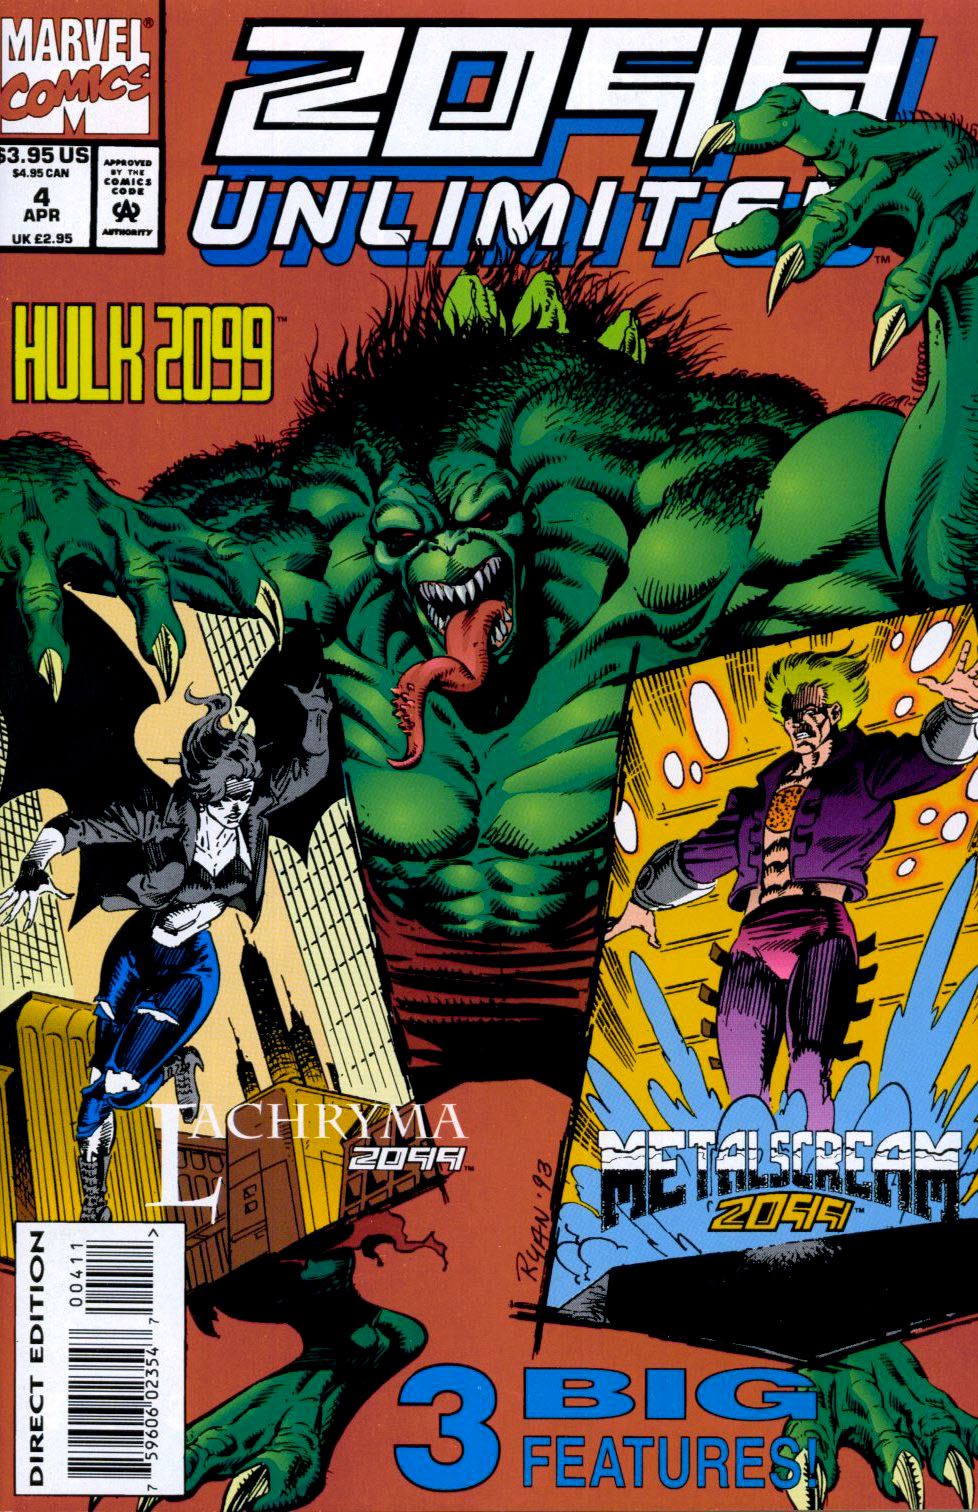 2099 Unlimited Cover.jpg